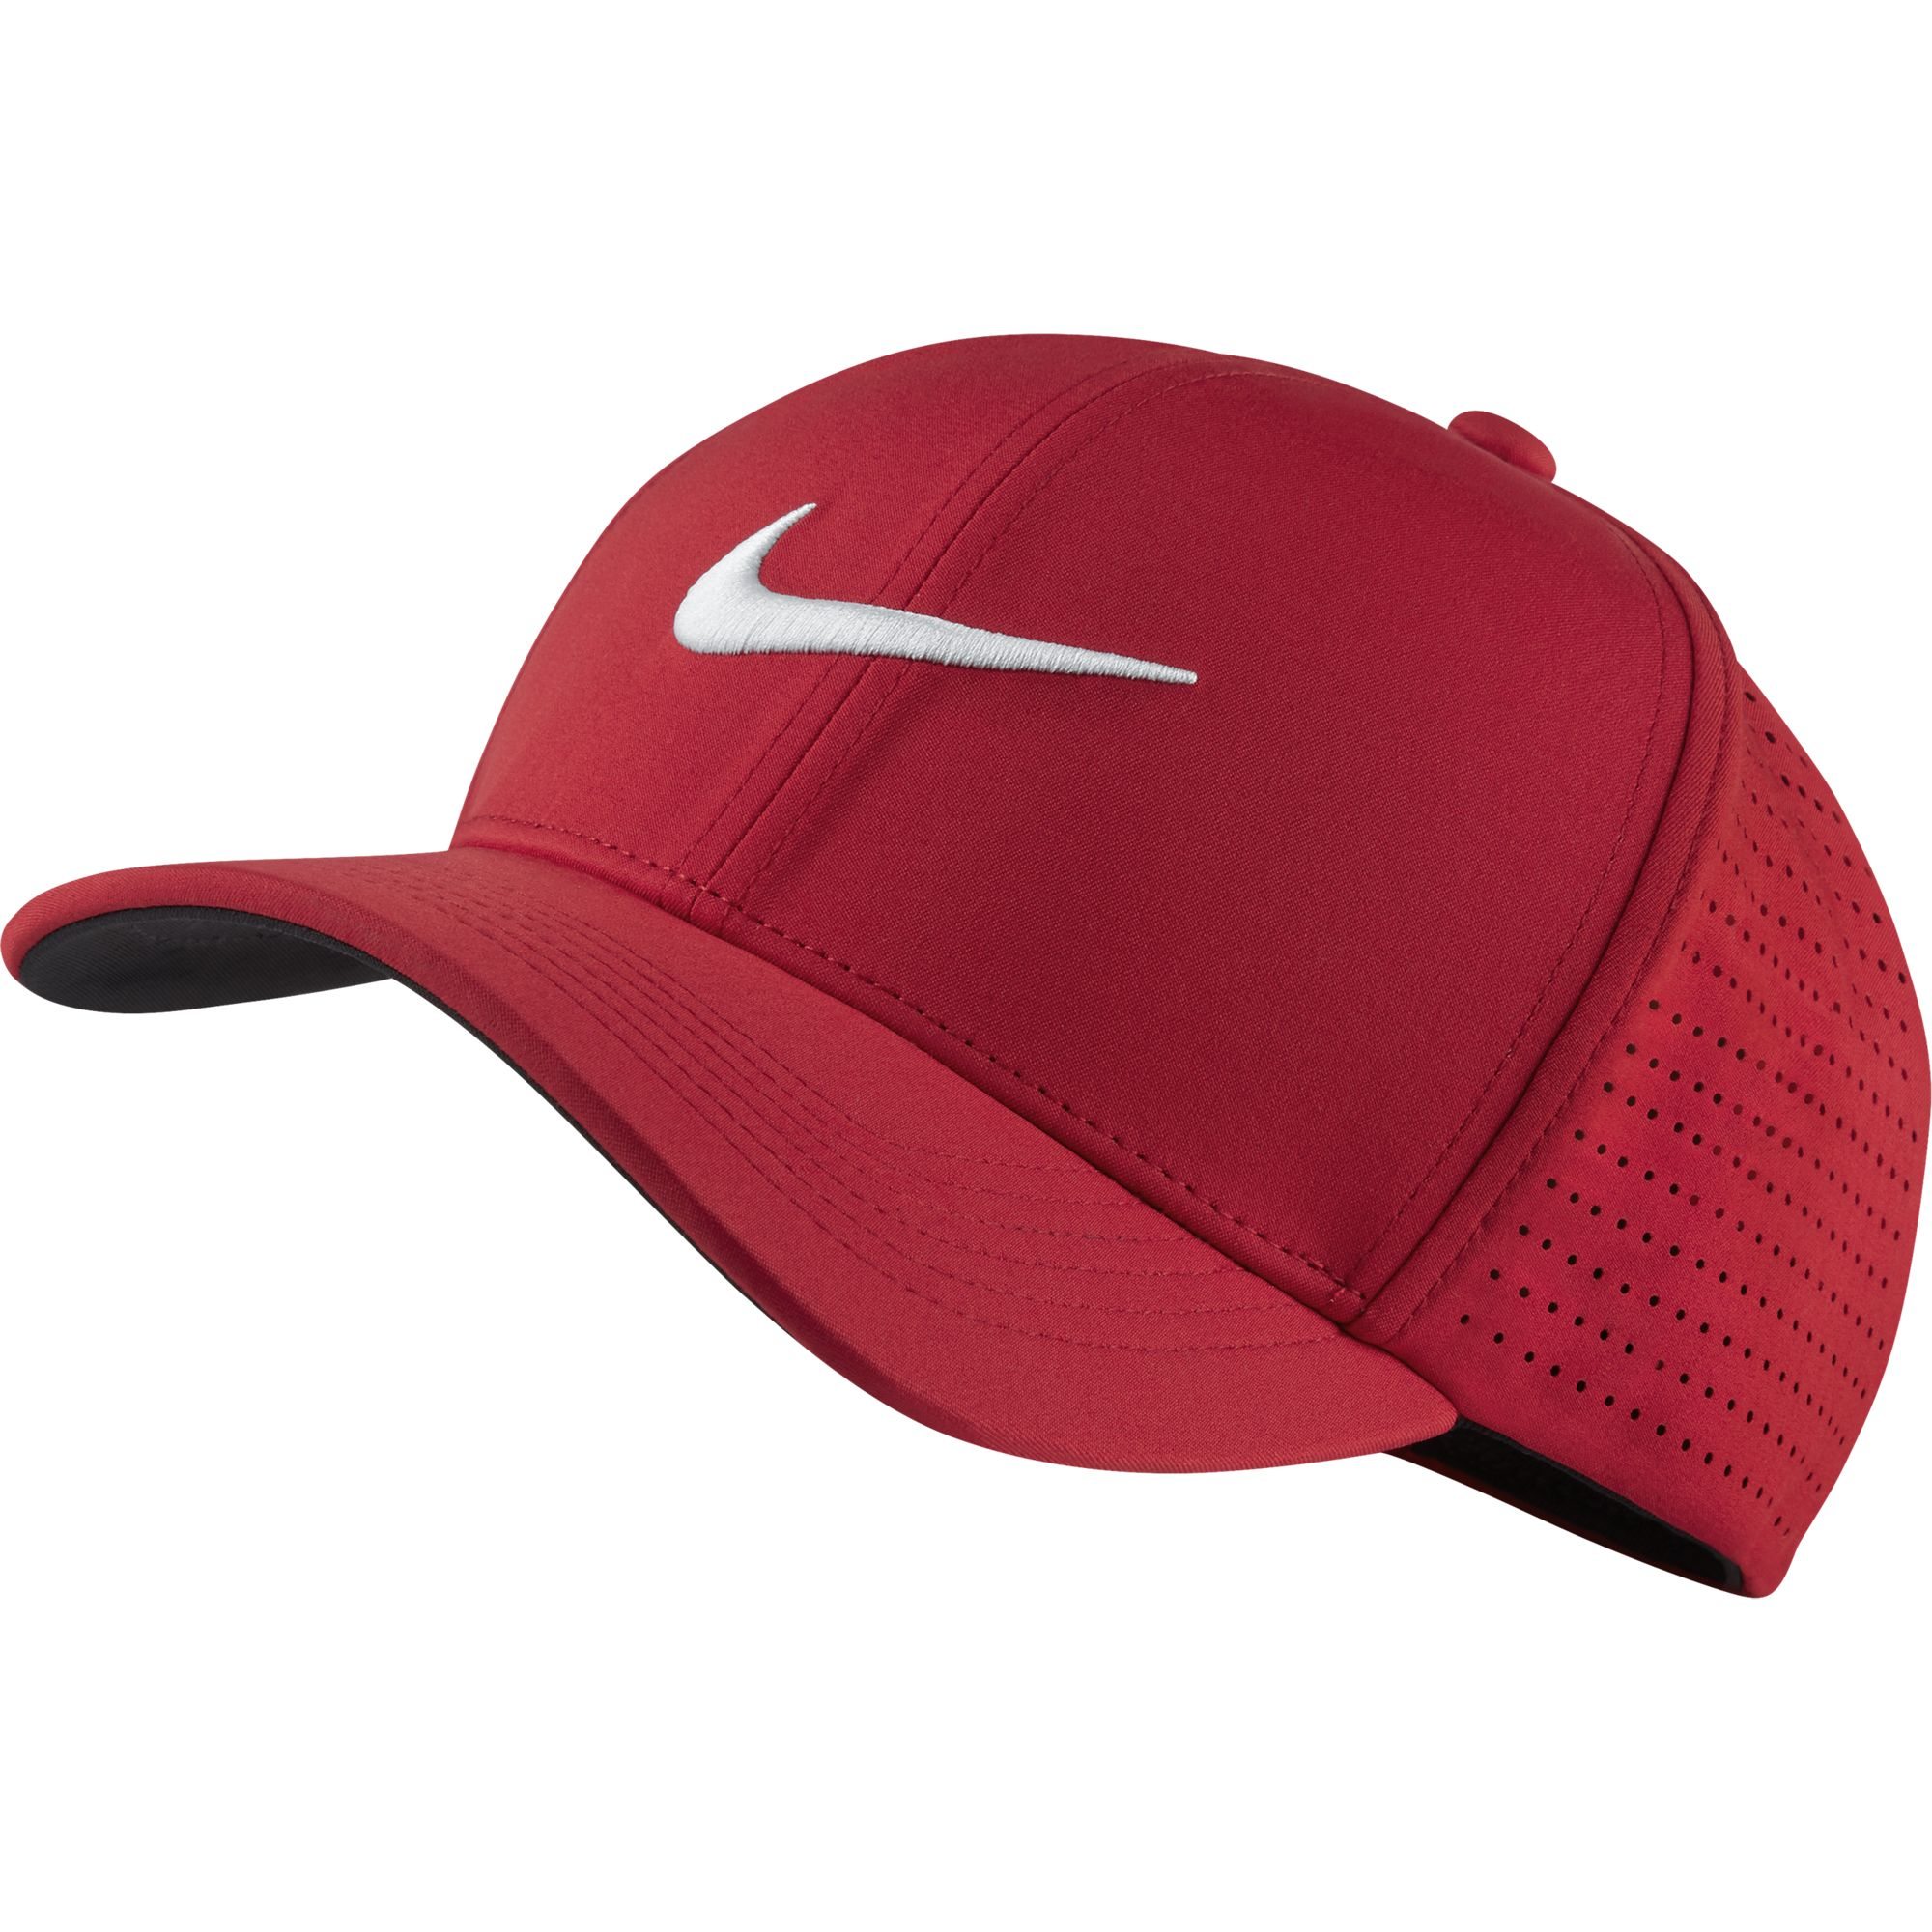 The Nike Classic 99 Fitted Golf Hat offers a comfortable fit and  exceptional airflow on the course with stretch fabric and laser-cut  perforations on the ... 00735a6d948